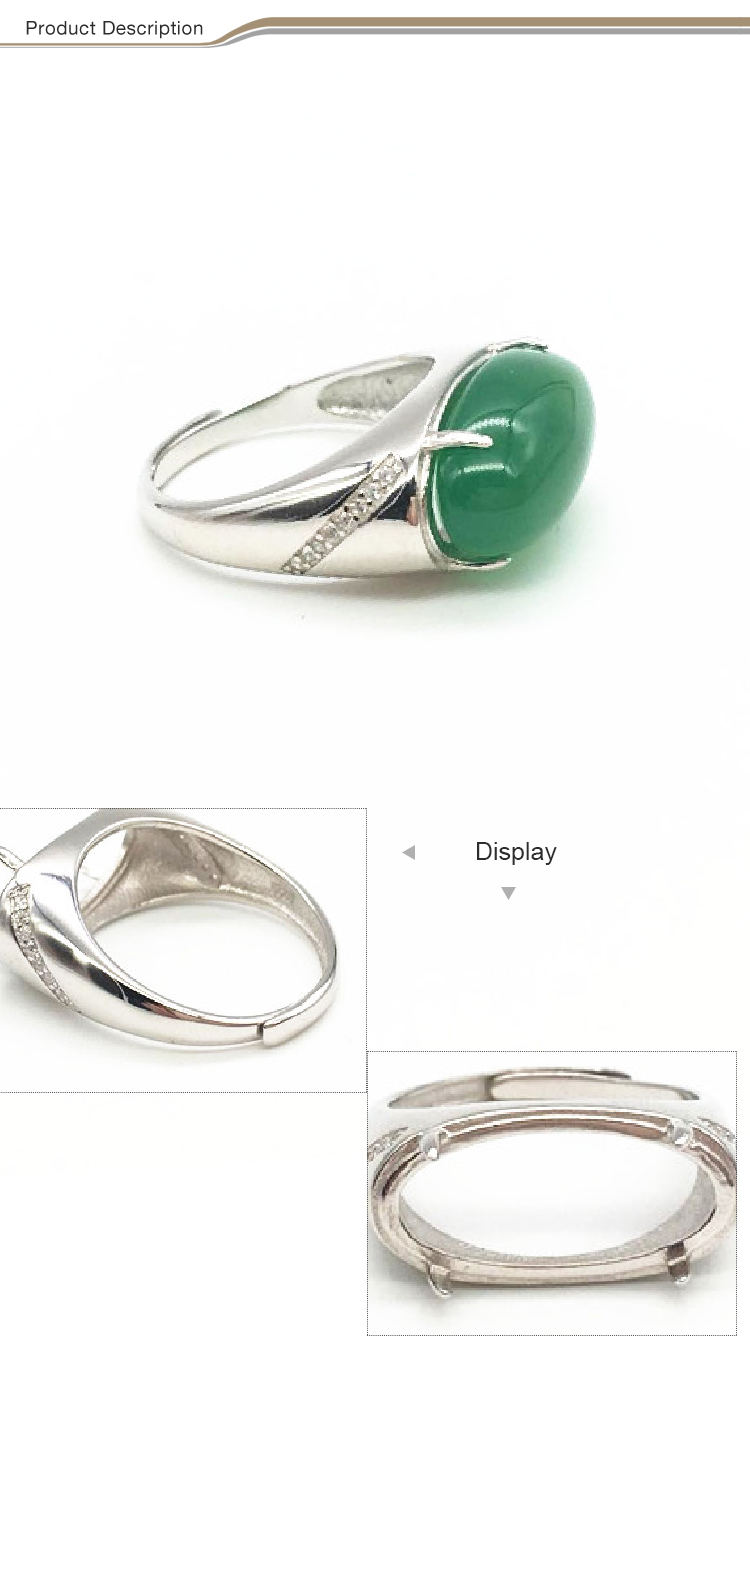 Wholesale fashion ring adjustable 925 sterling silver jade ring for women